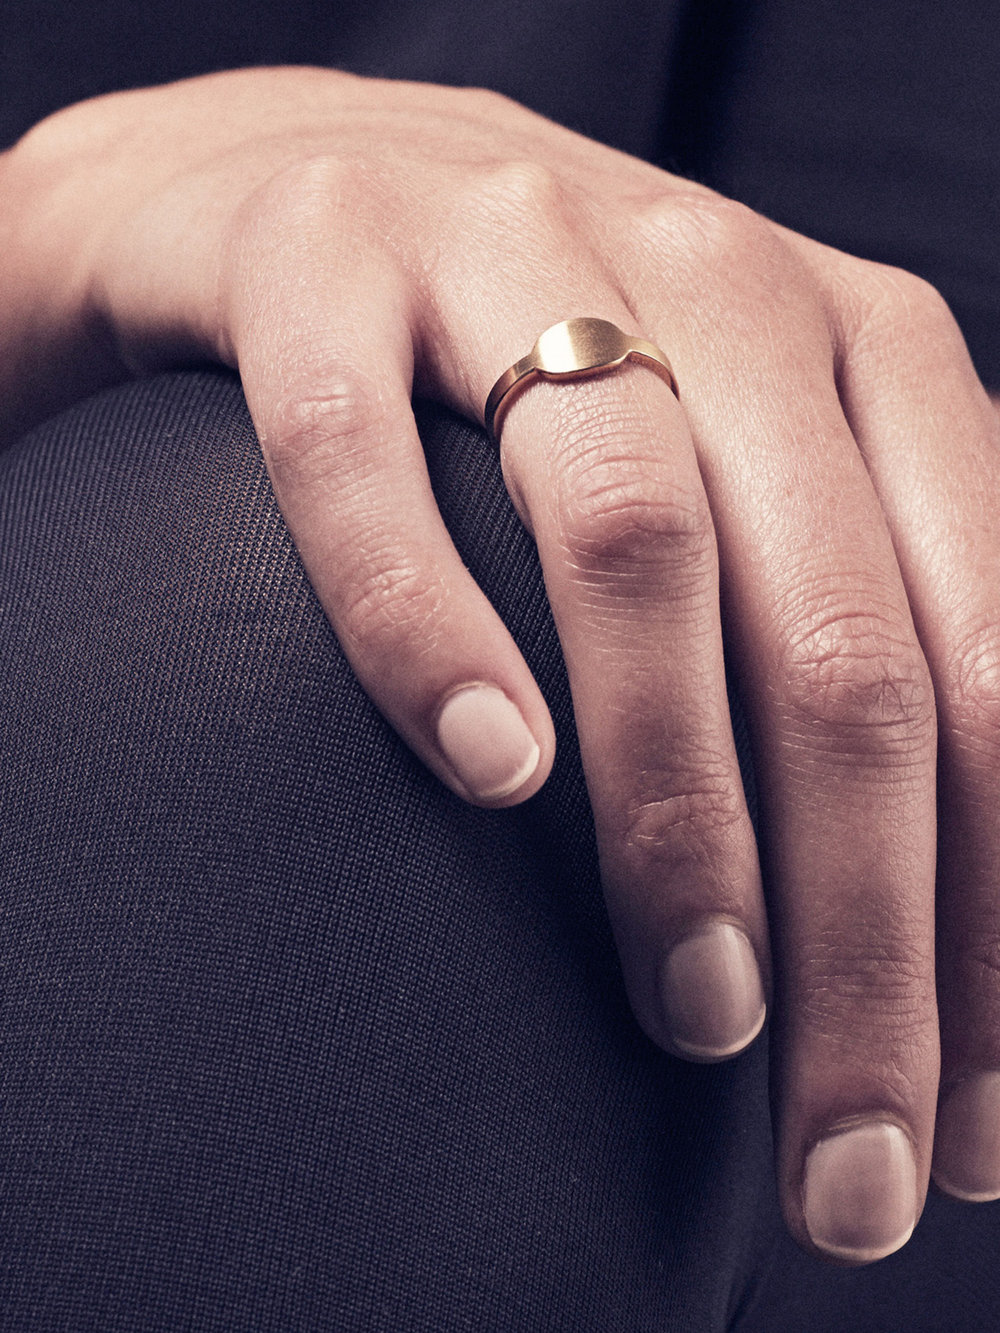 Siegelring Anda, queroval klein in rosegoldplatiertem 925 Silber  Signet ring Anda, horizontal oval small in silver, rosegoldplated